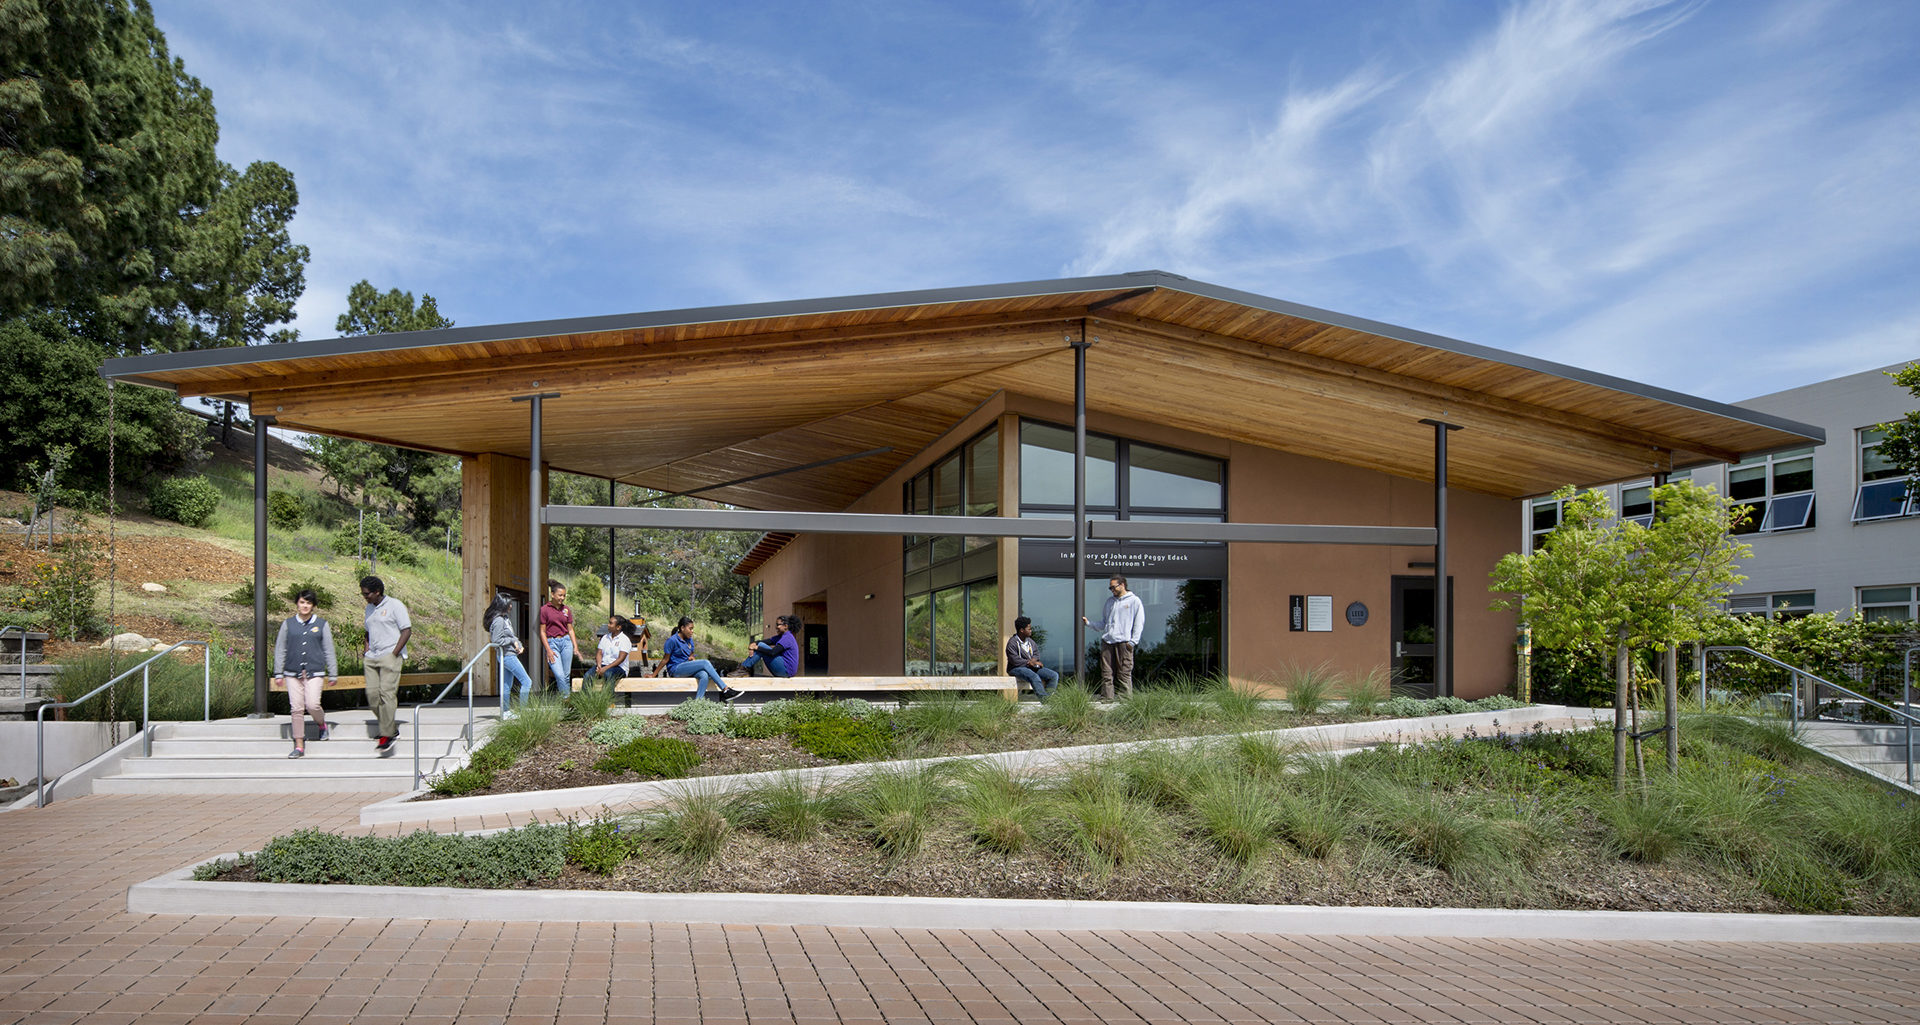 Center for Environmental Studies | Photo by David Wakely